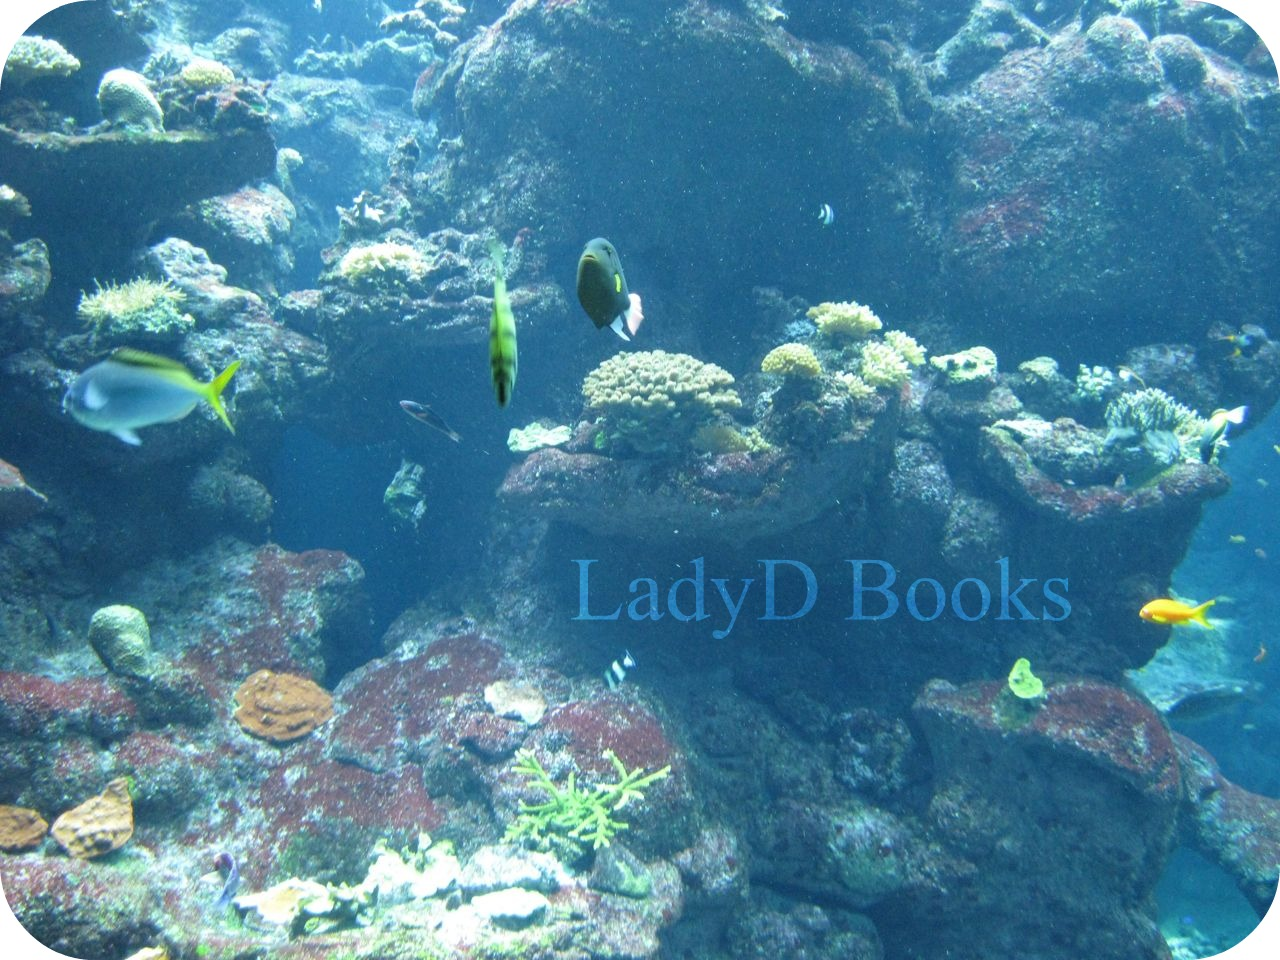 LadyD Books: Wordless Wednesday: Under The Sea, Coral Reef Adventure 310